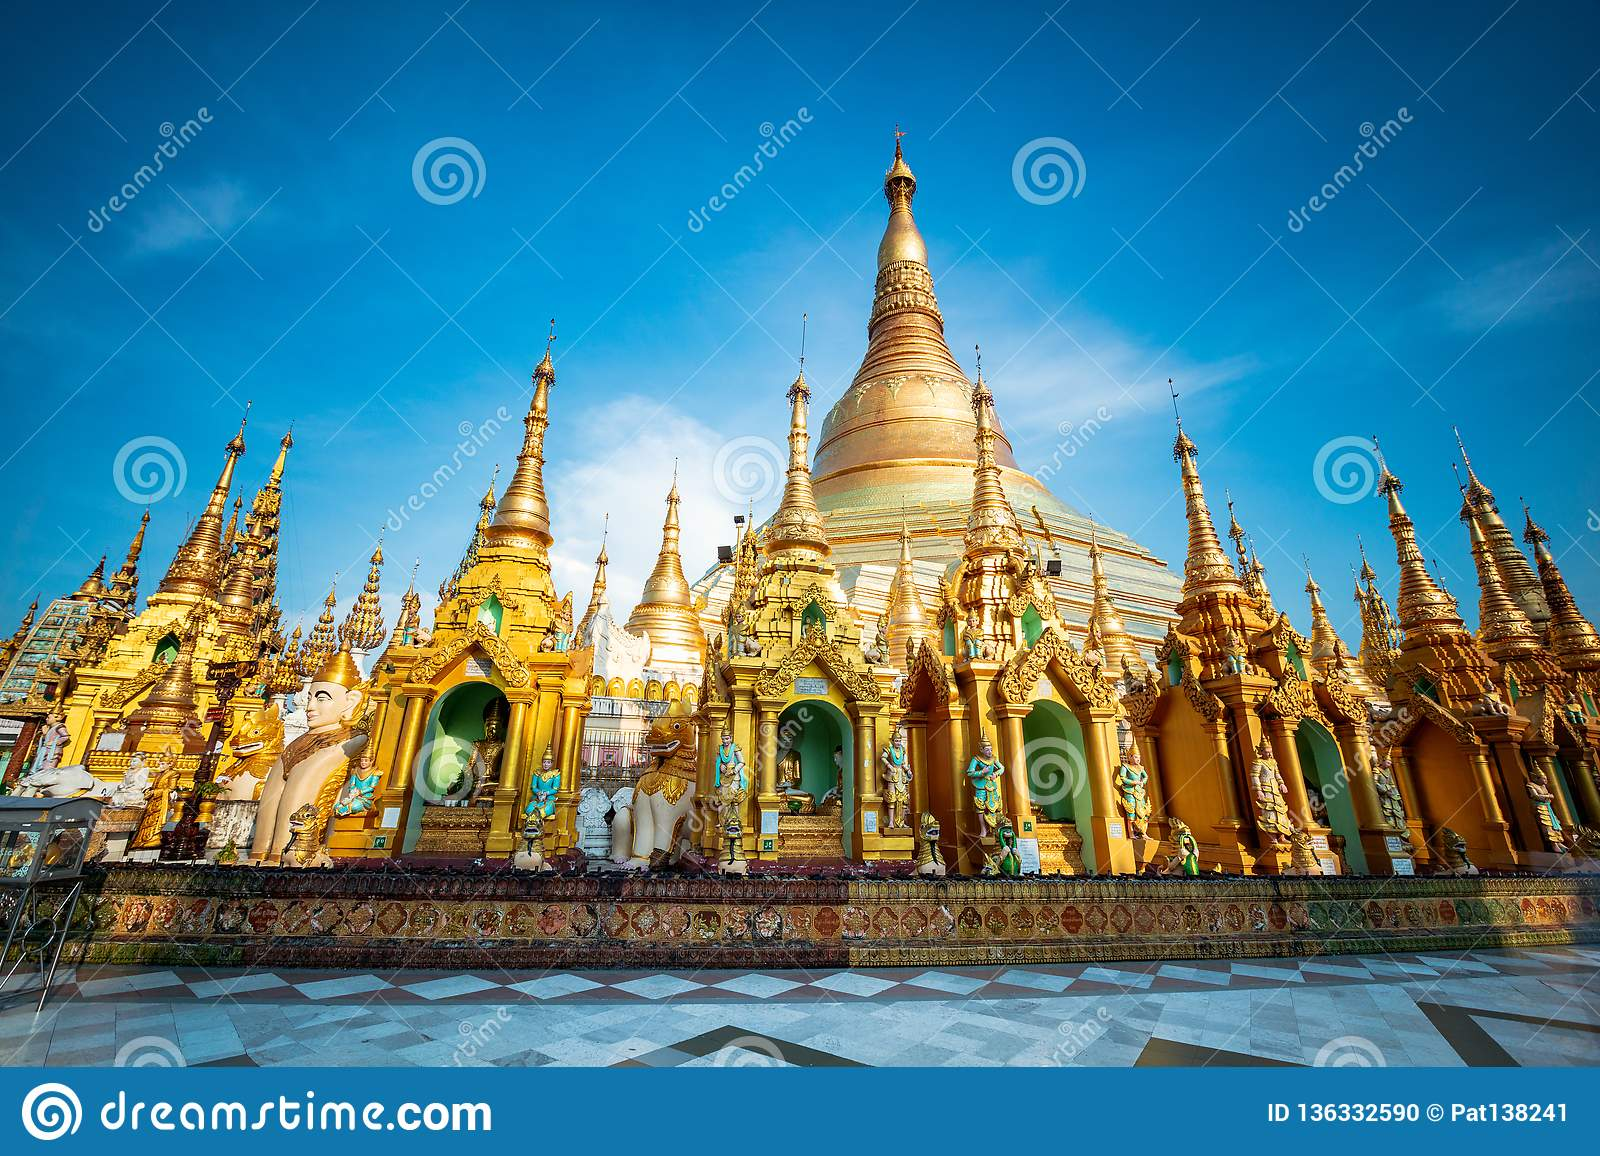 GoEoo 10x8ft Shwedagon Pagoda in Yangon Backdrop Vinyl Photography Background Myanmar Famous Sacred Place and Tourist Attraction Landmark Tourist Sites Photo Studio